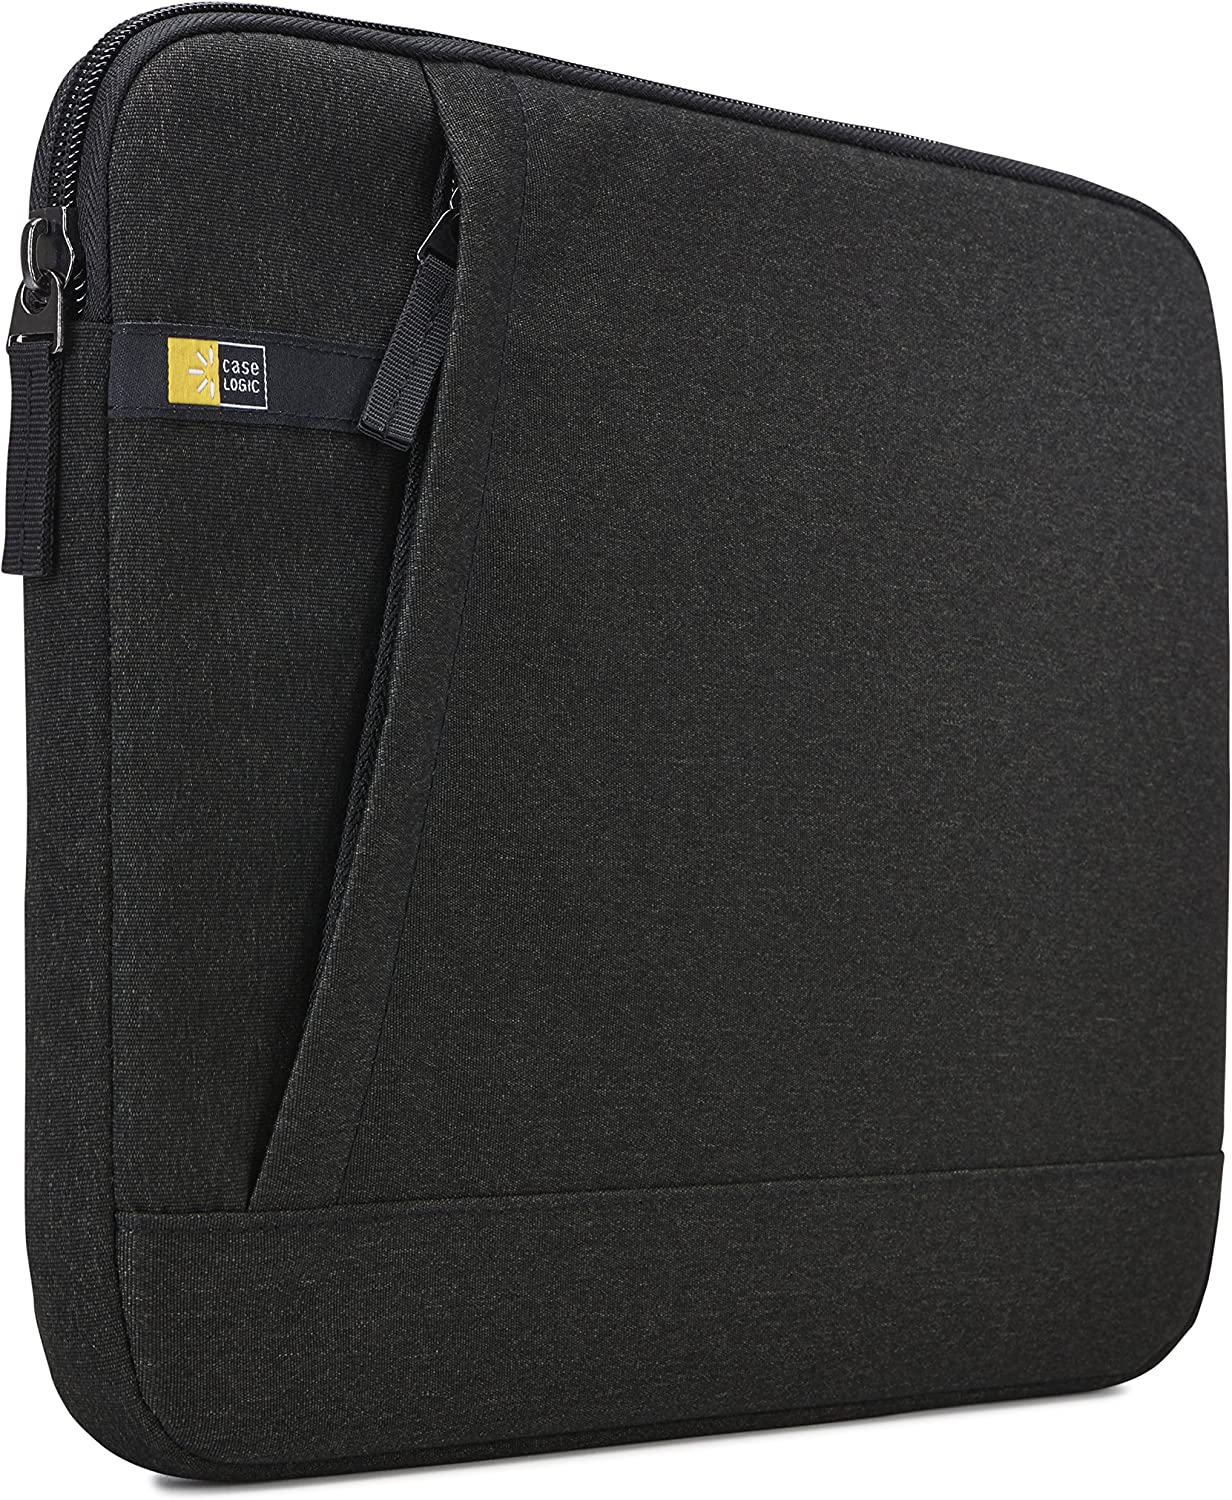 Case Logic Huxton13.3 Laptop Sleeve (HUXS-113BLK),Black